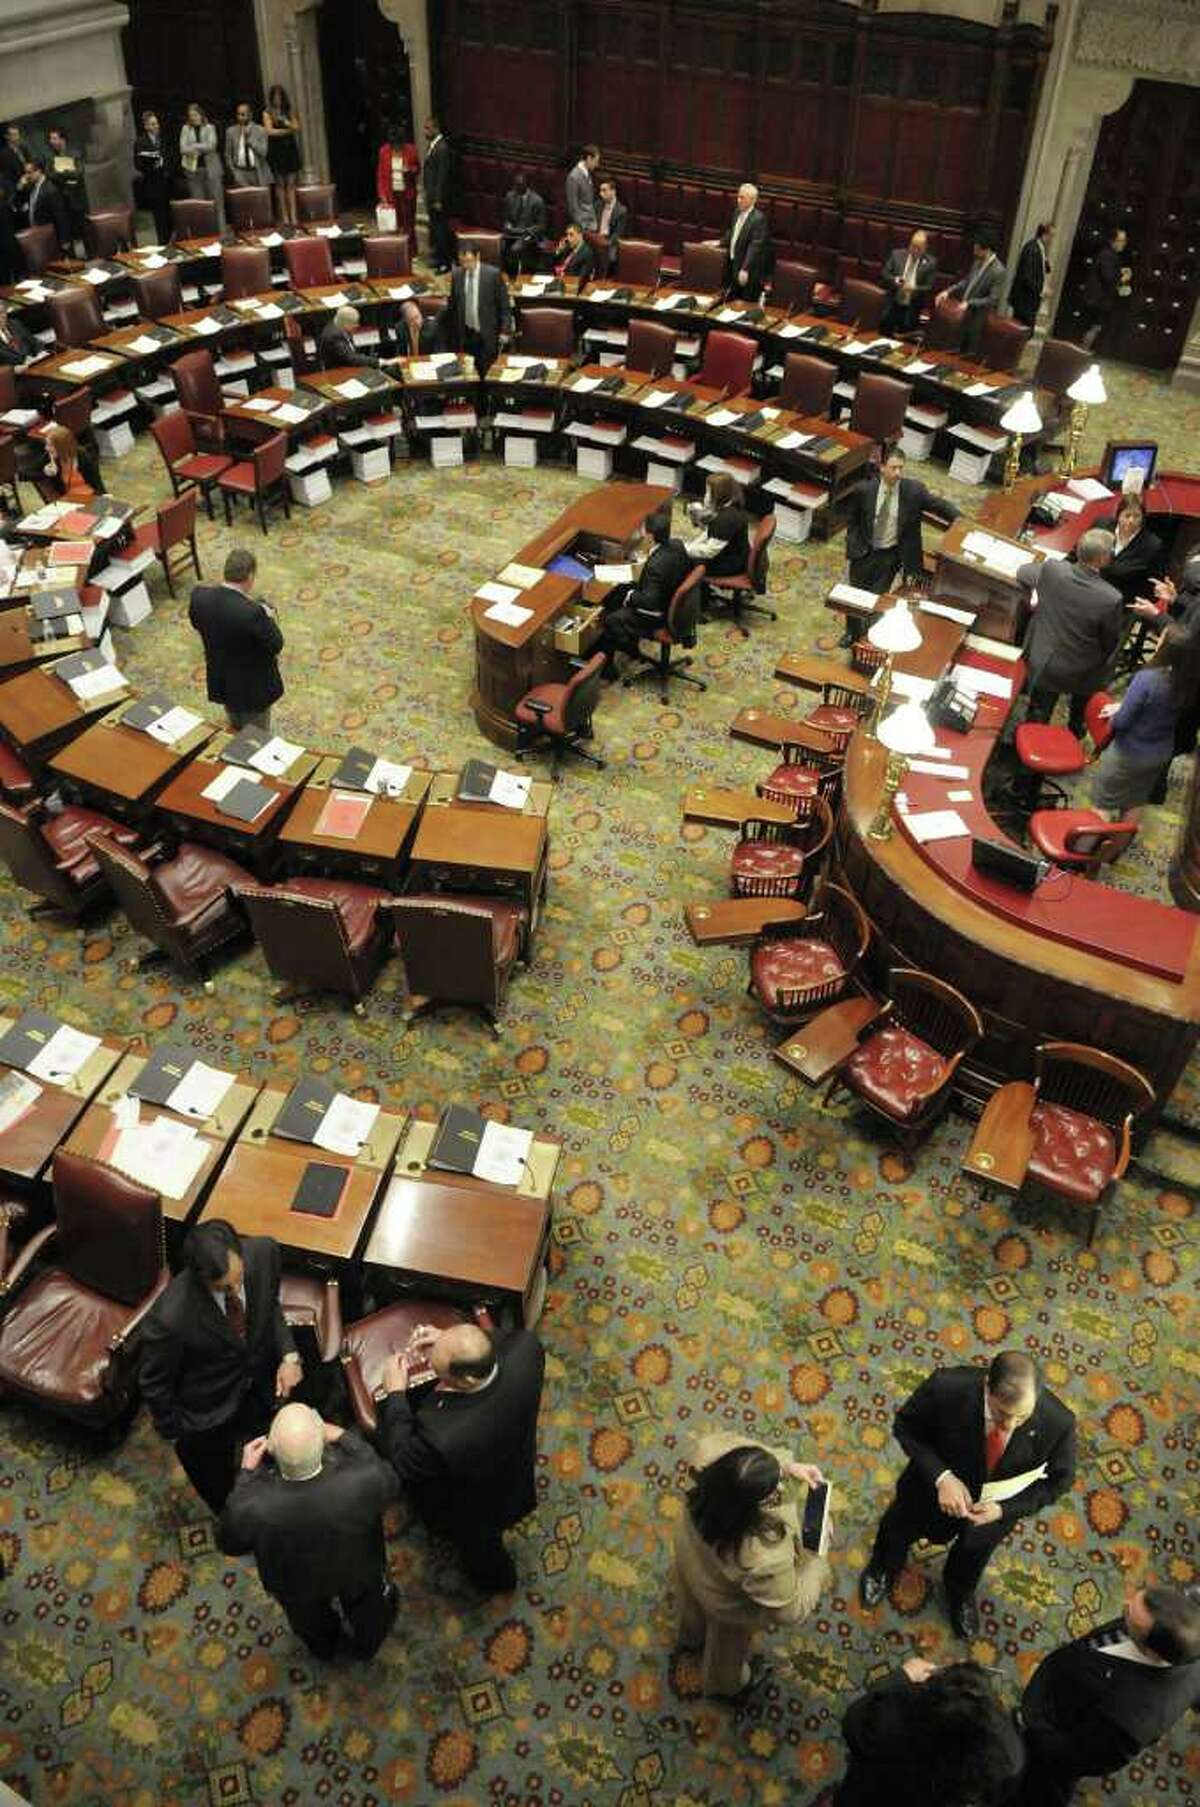 Senators and staff talk on the floor of the New York State Senate before the start of a Senate session on Tuesday, March 29, 2011. The stacks of paper beneath the Senator' desks contain budget bills that will be voted on. (Paul Buckowski / Times Union)